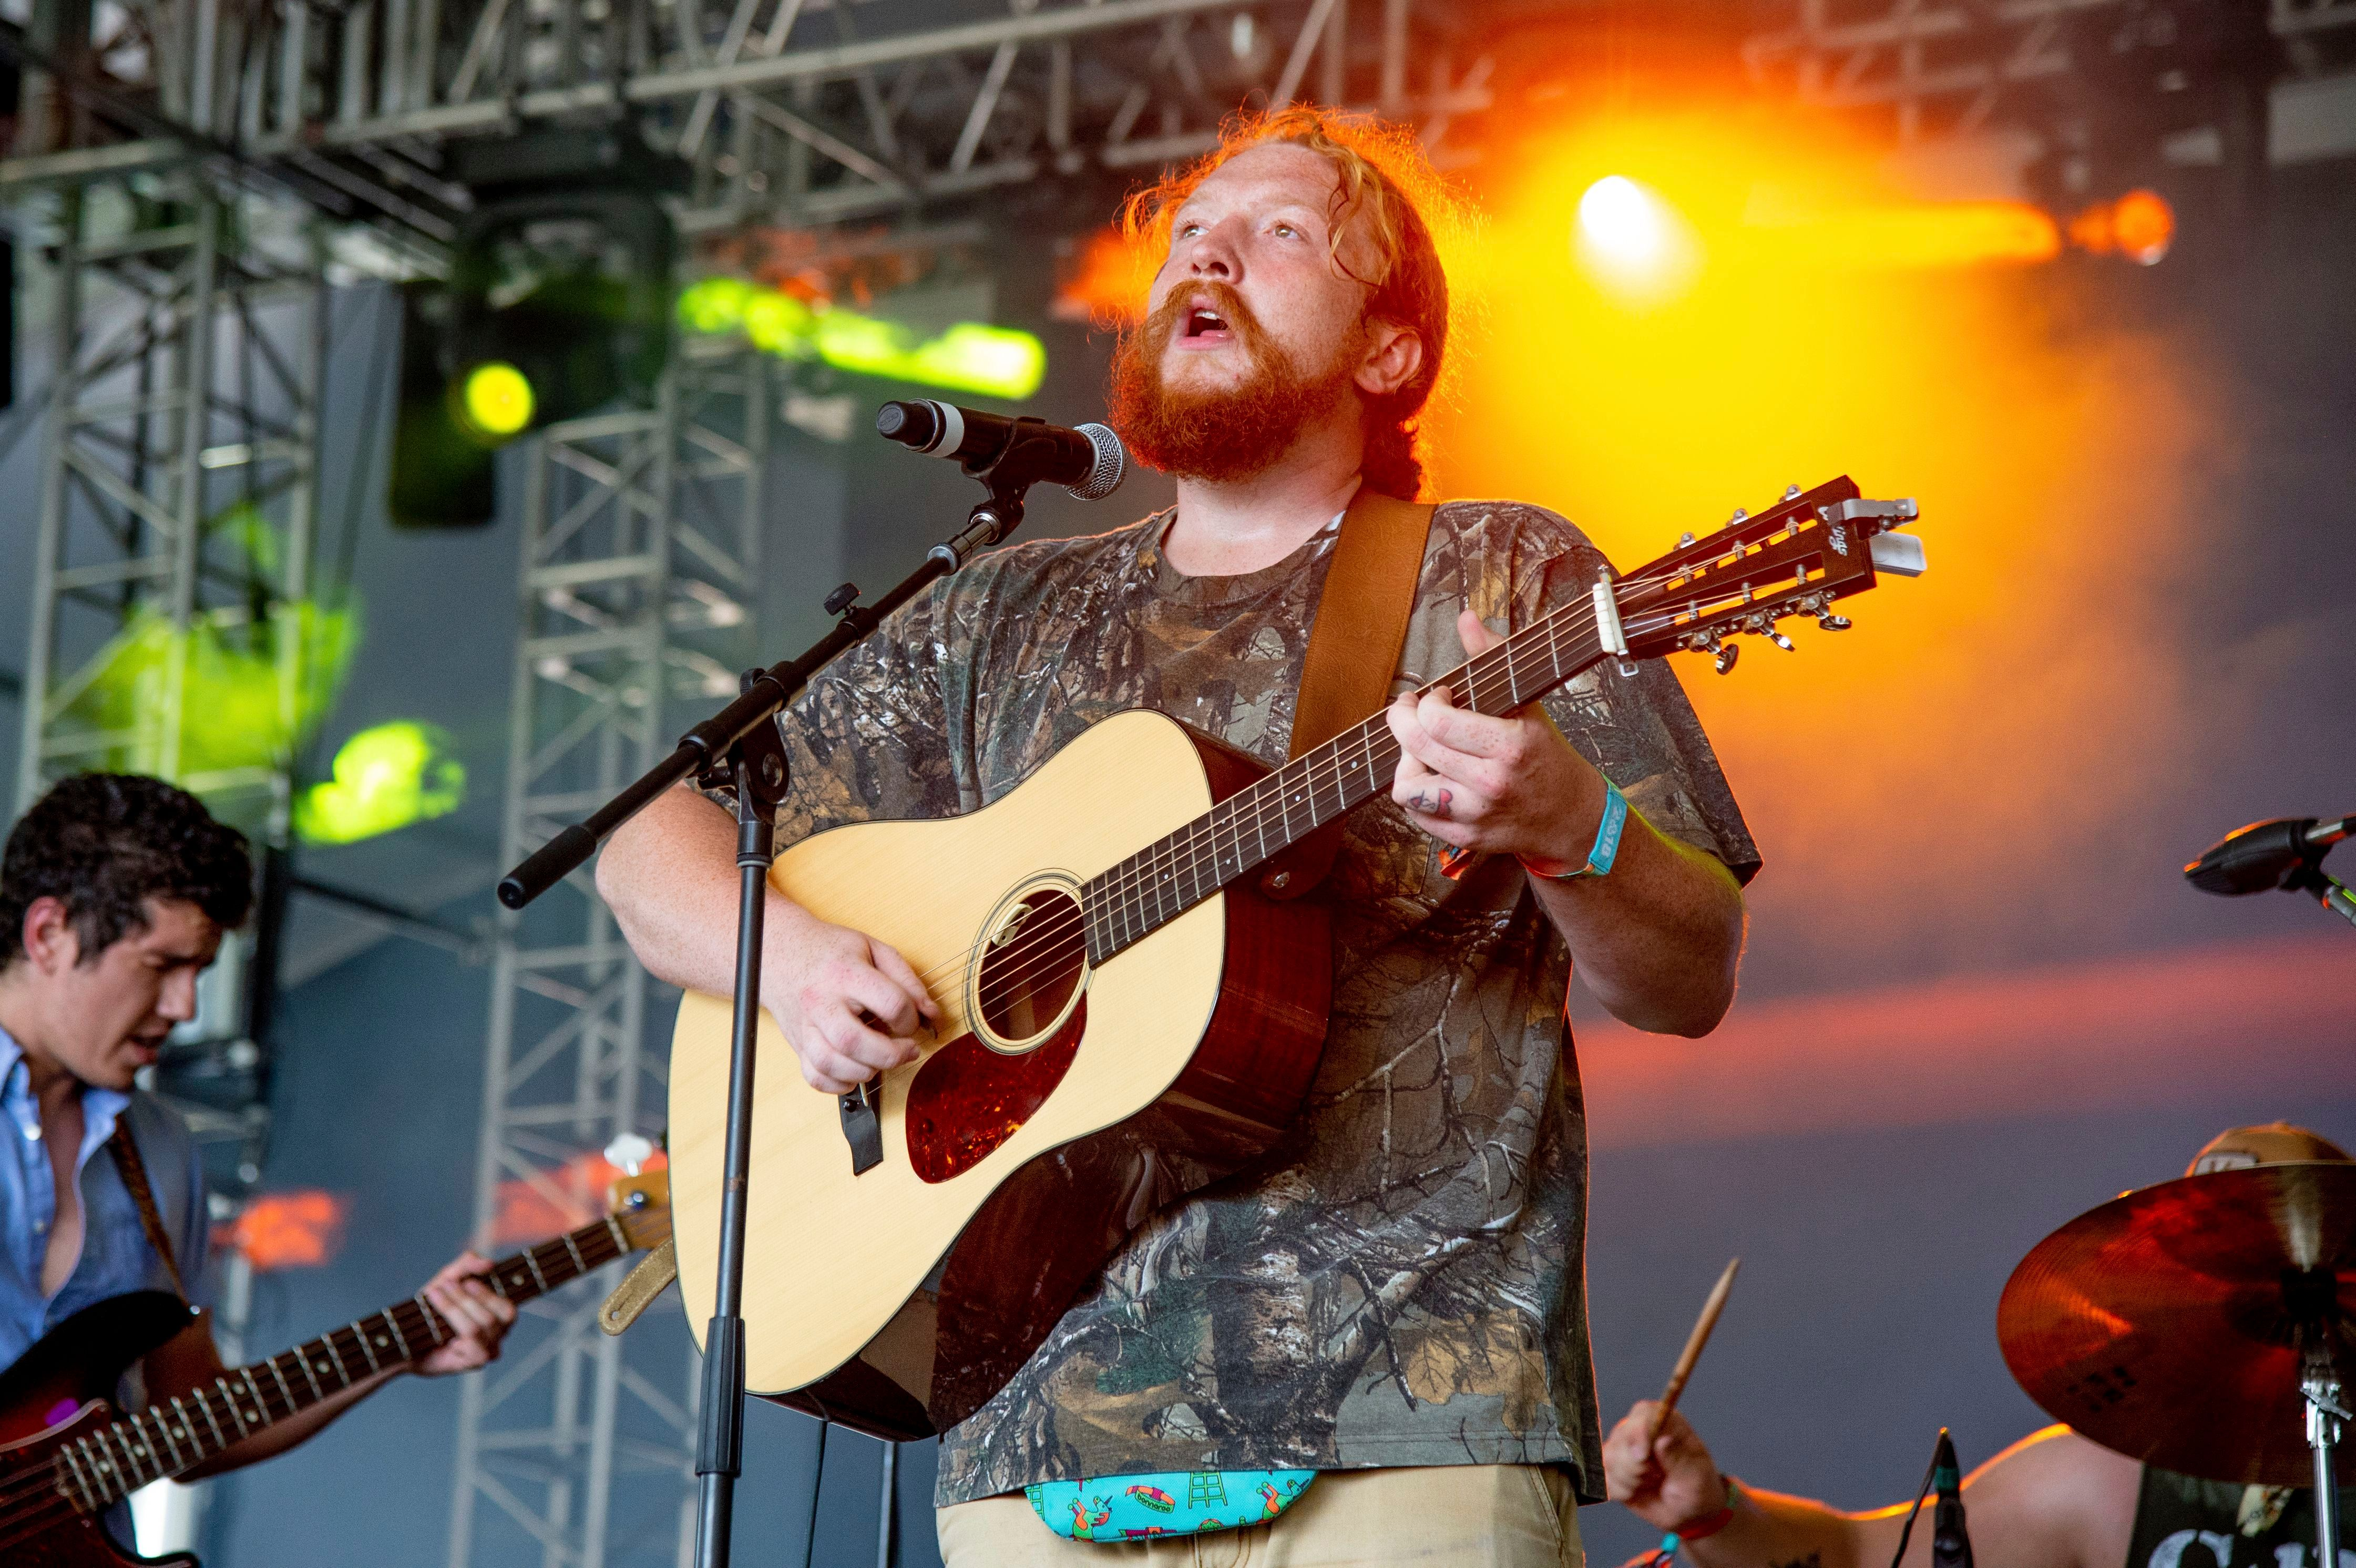 1701c12a945d Tyler Childers tour. Tyler Childers has announced several new ...